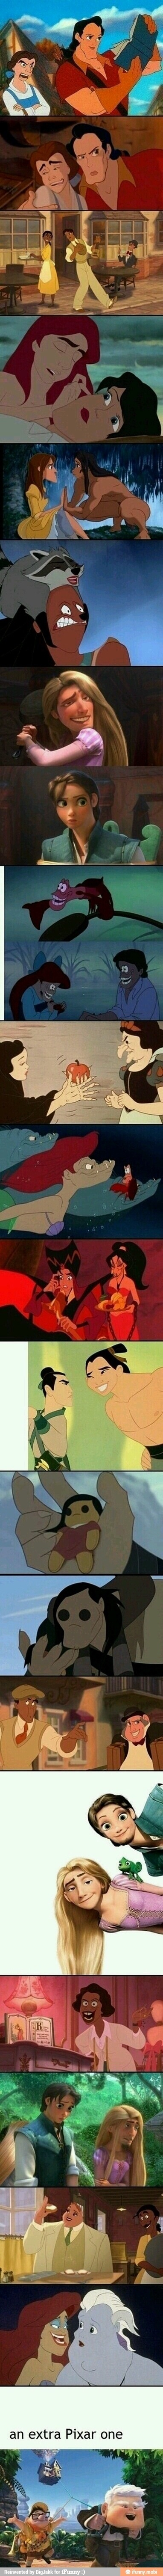 Disney characters with their faces switched! Made me lol!!